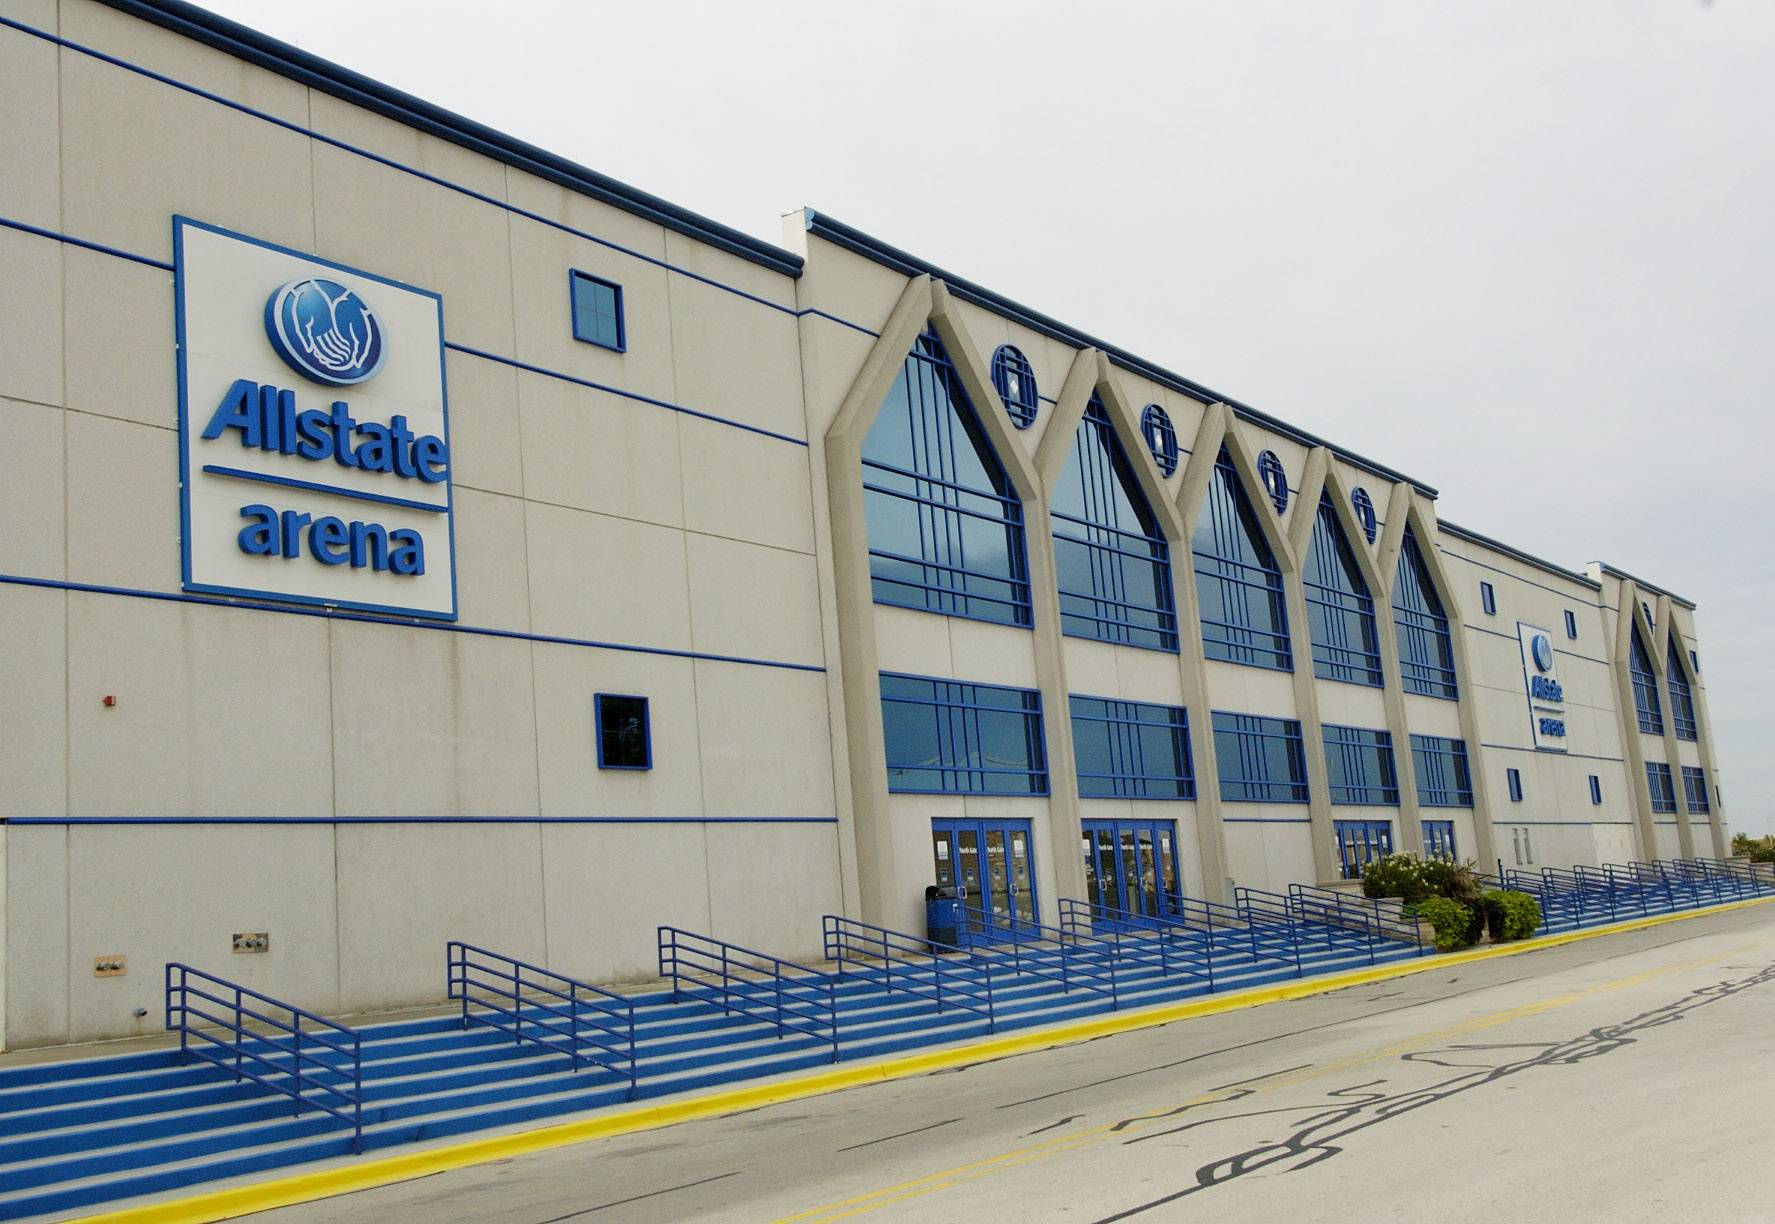 Bomark Cleaning Service has janitorial and parking contracts for Rosemont's Allstate Arena and other village venues. The village board renewed agreements with the company this week.